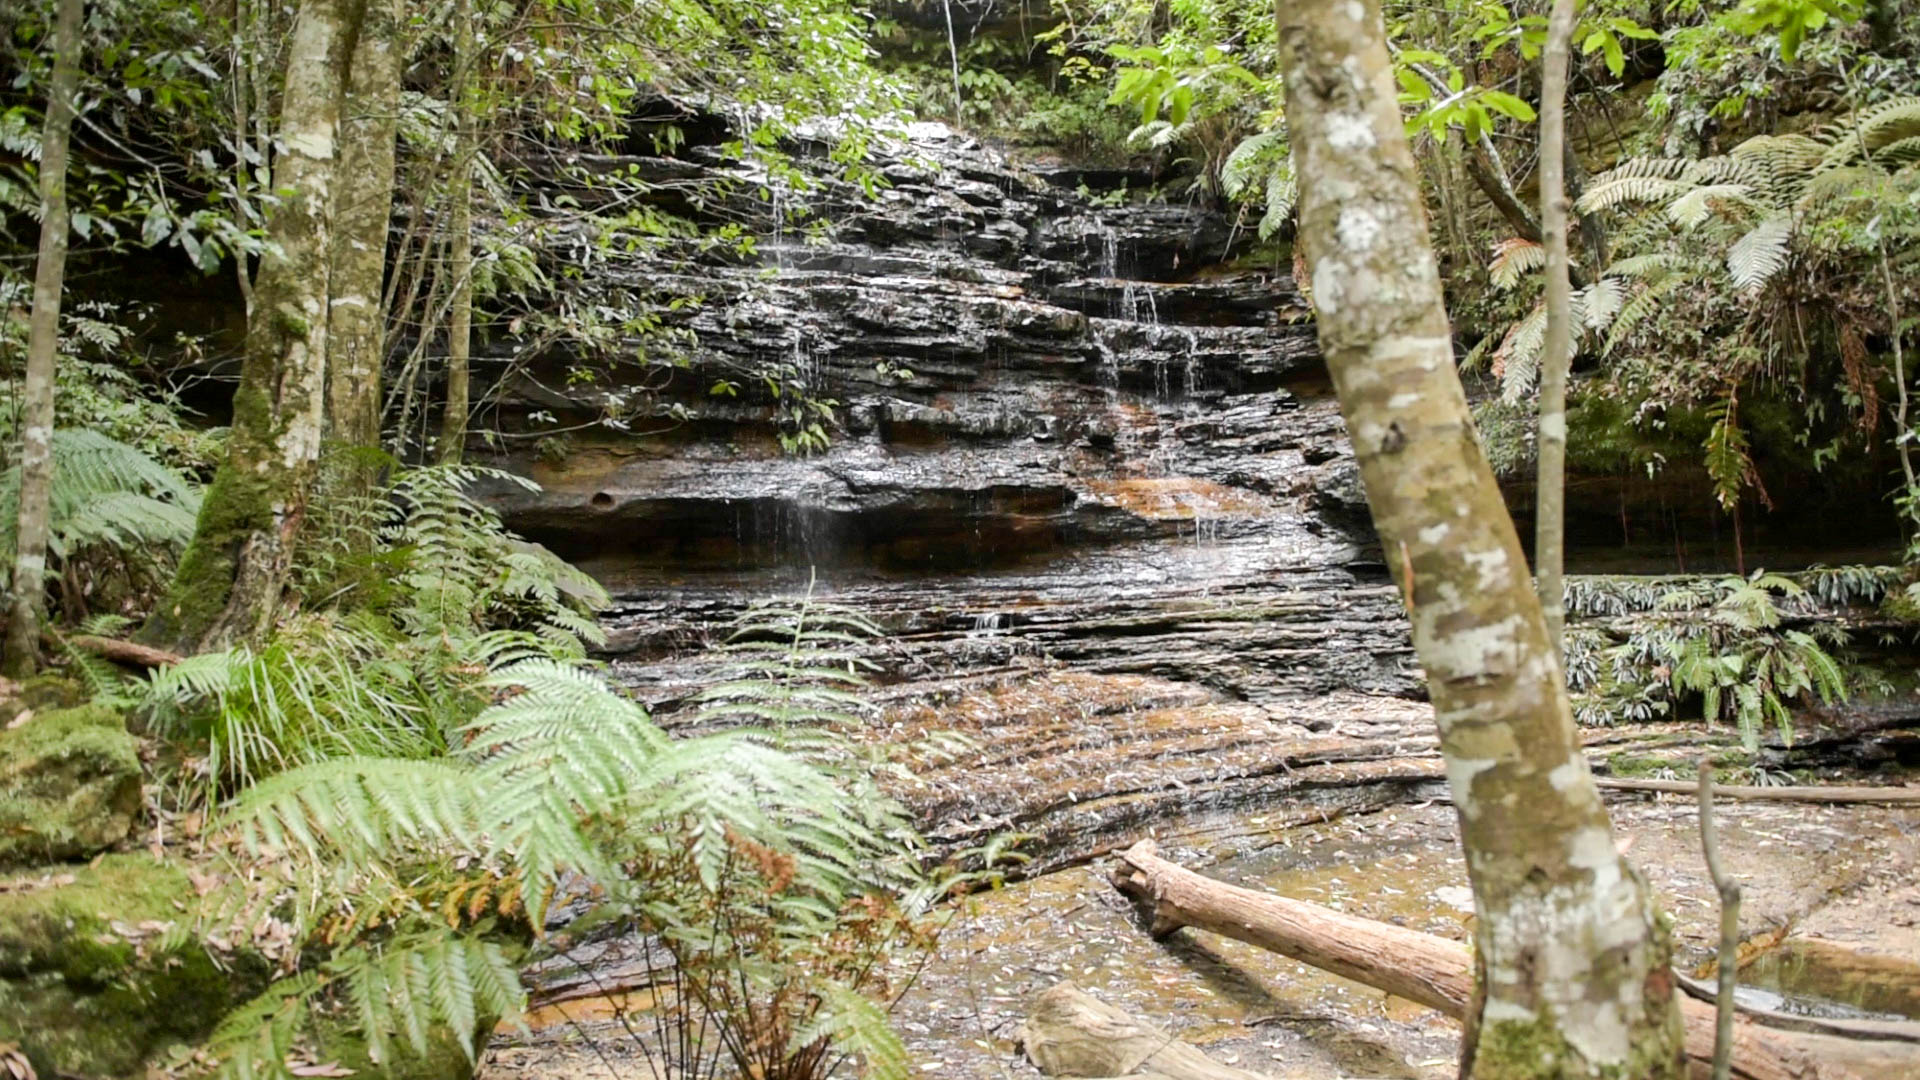 Junctio Falls Lawson Creek. Photo: V Hong